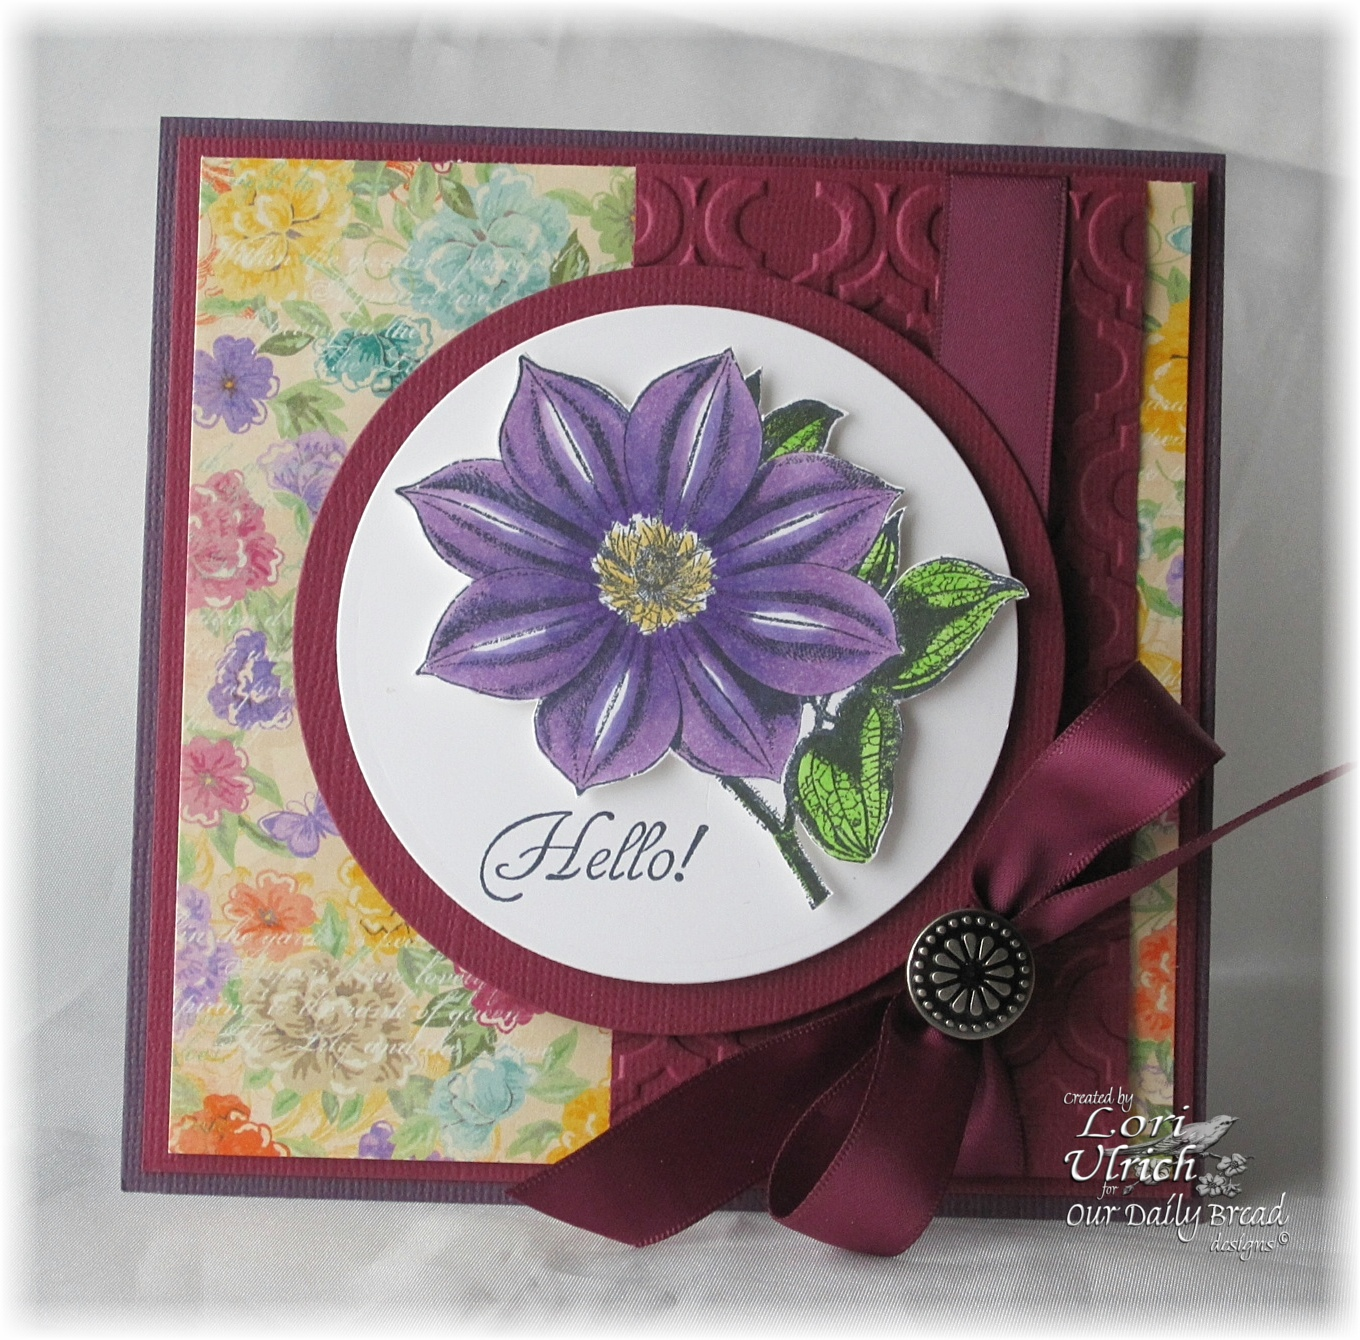 Stamps - North Coast Creations Floral Sentiments